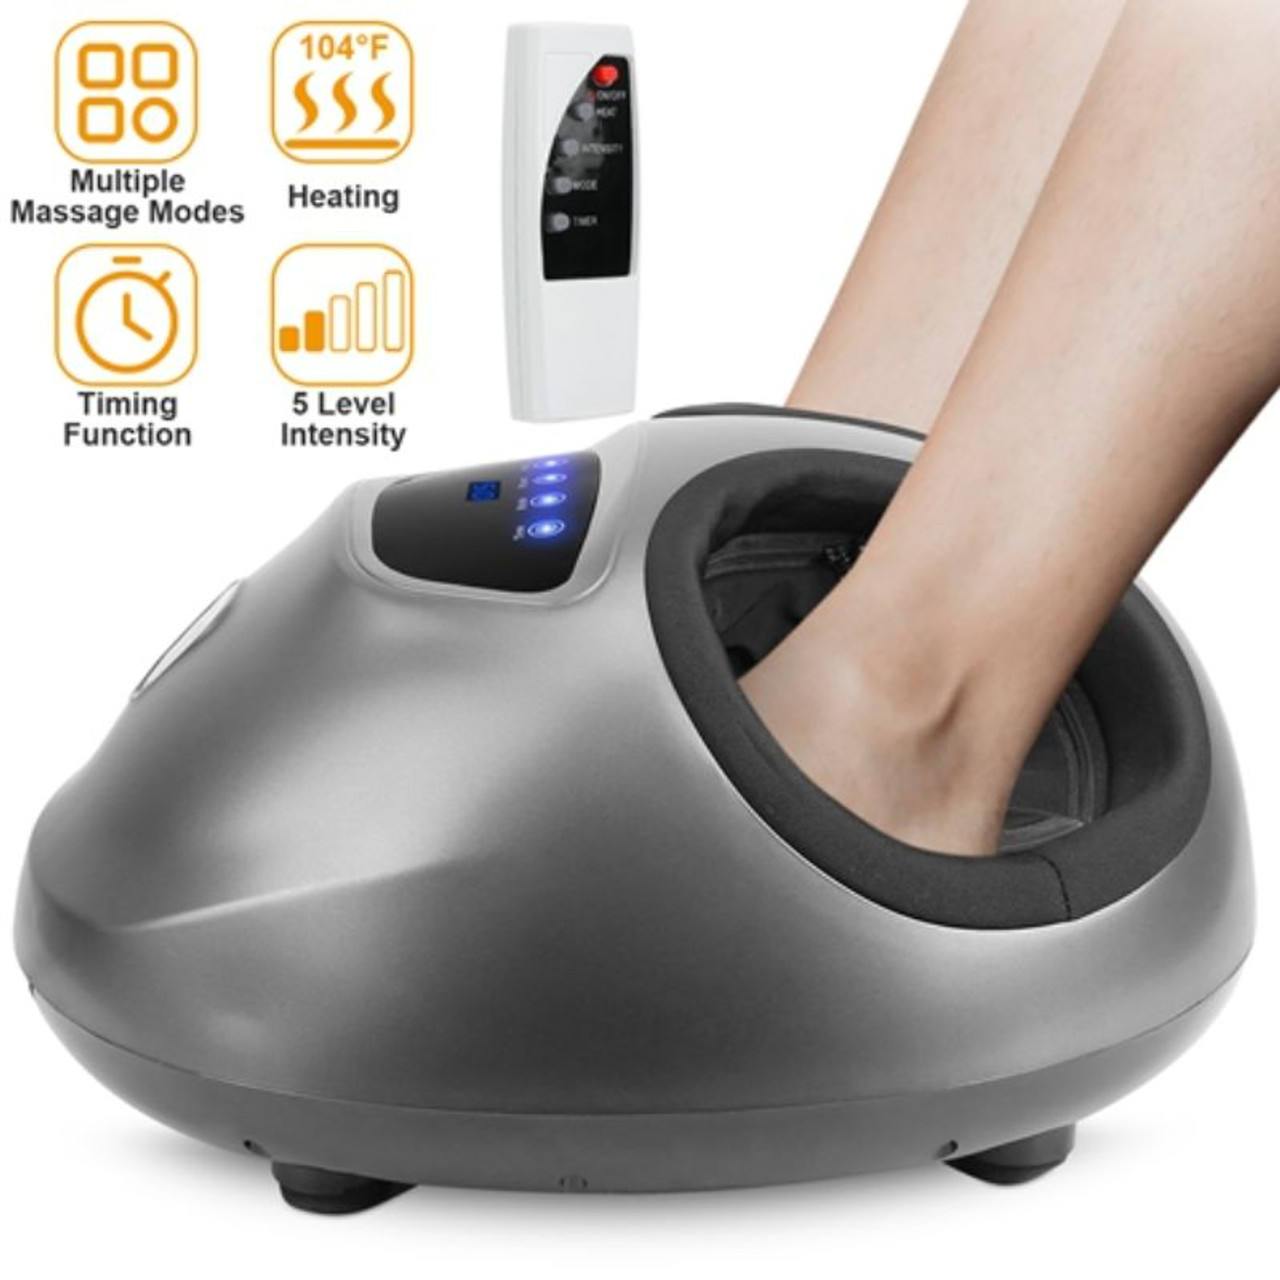 Electric Foot Massager with Heat, Deep-Kneading, and 5 Intensity Levels